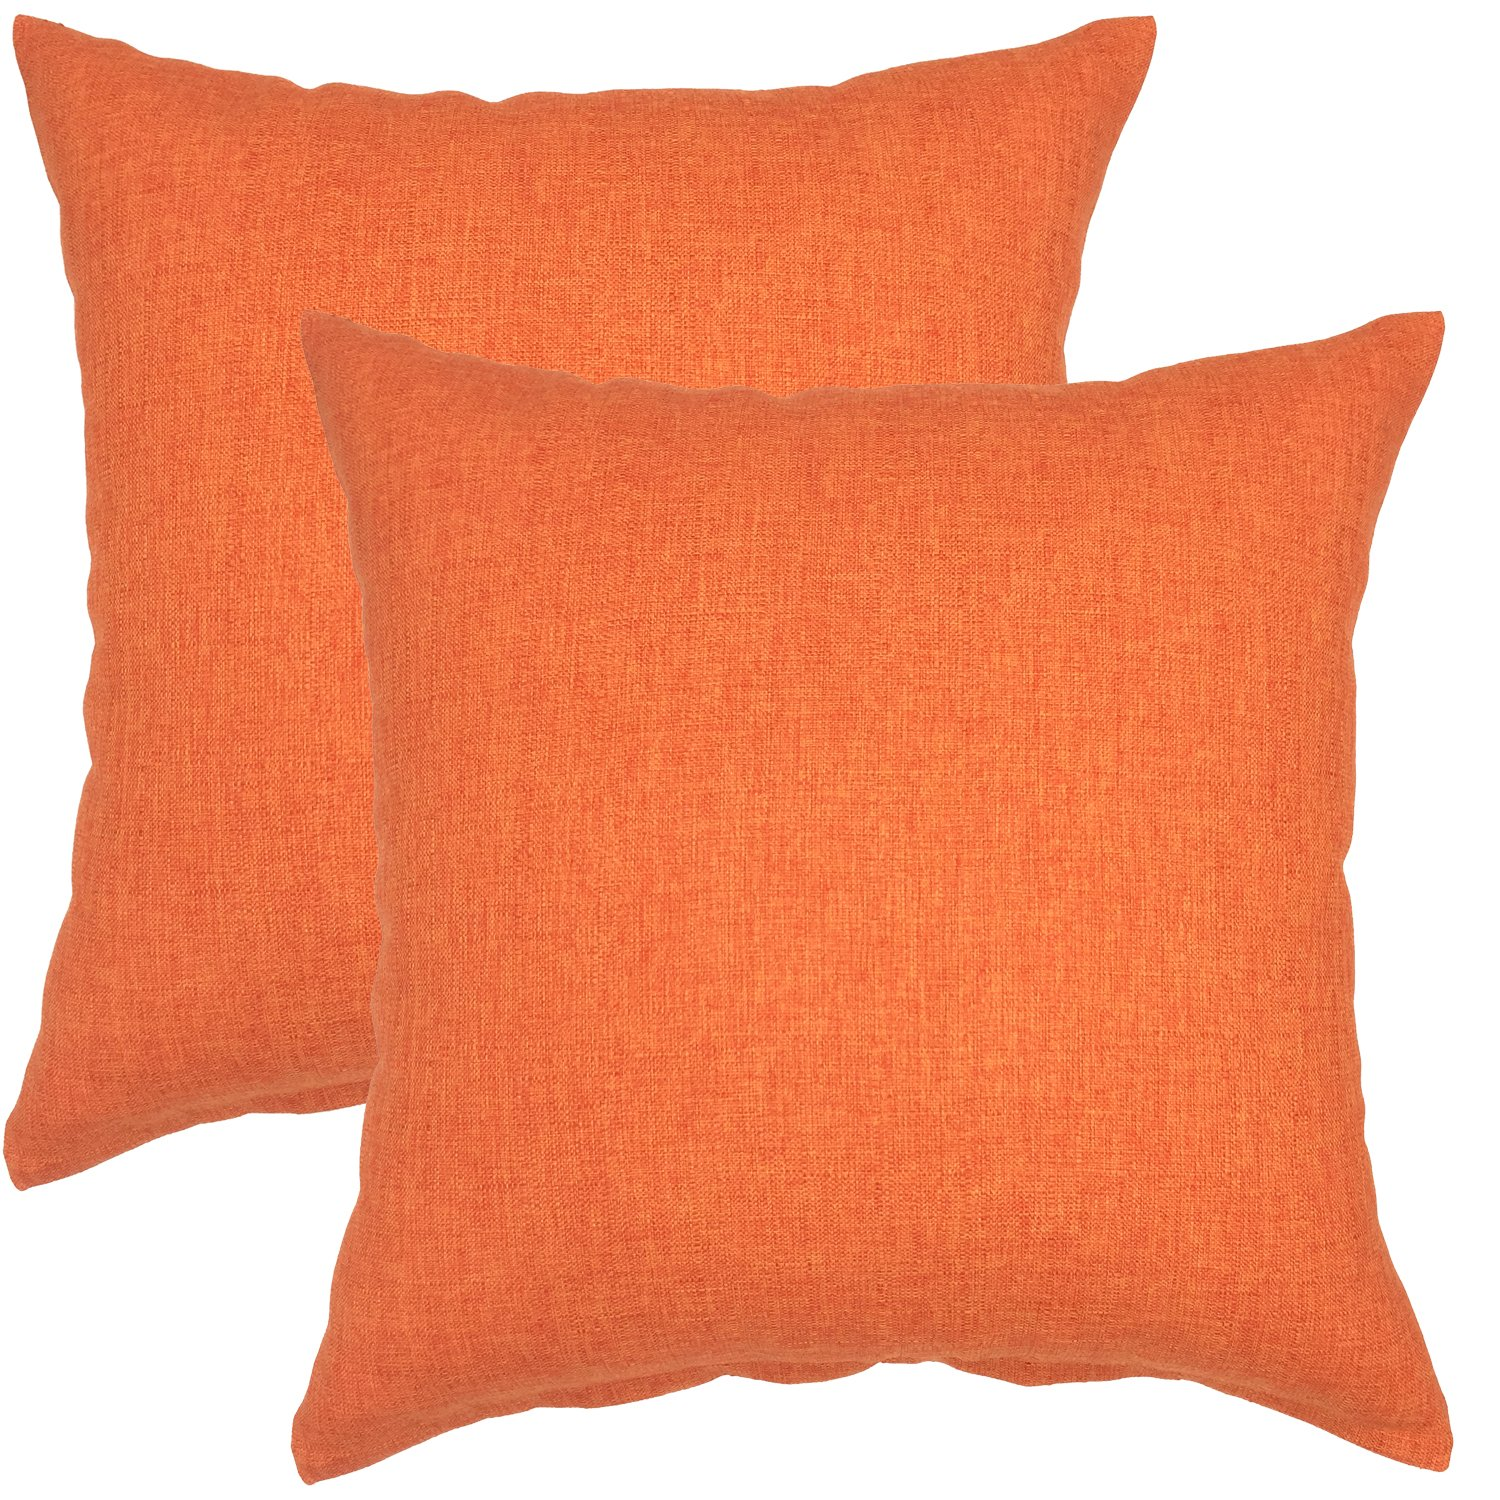 YOUR SMILE Pure Square Decorative Throw Pillows Case Cushion Covers Shell Cotton Linen Blend 18 X 18 Inches , Pack of 2 (Orange) by YOUR SMILE